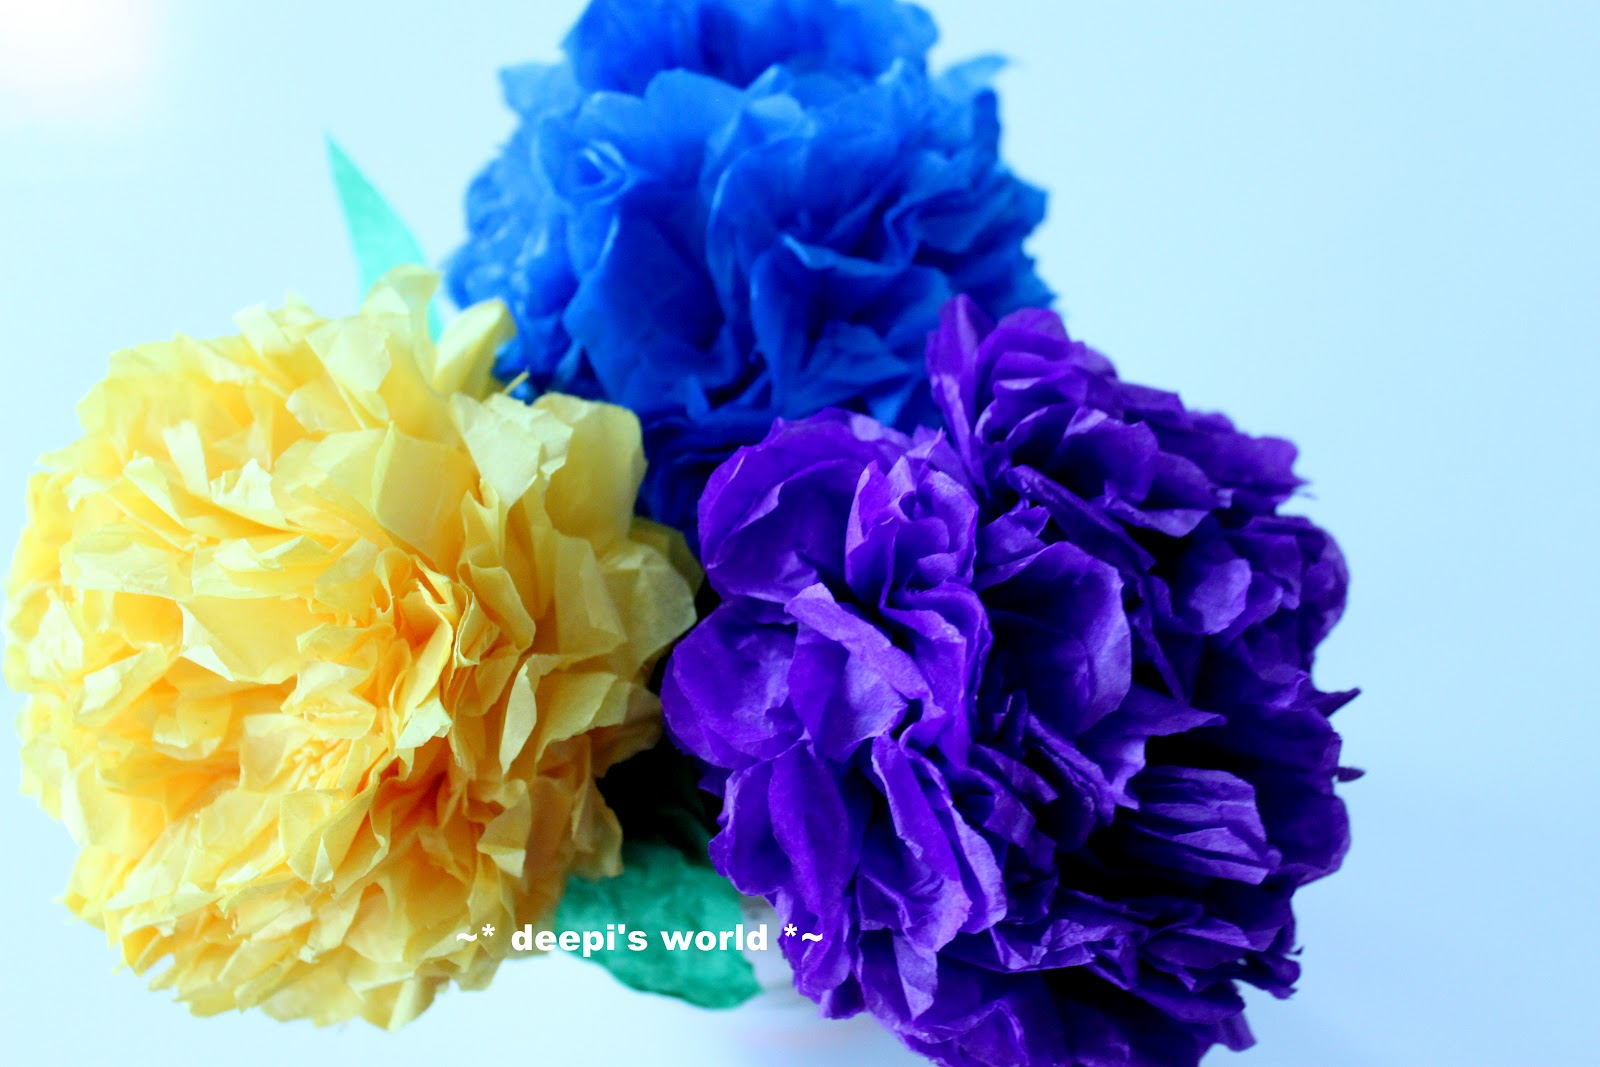 Deepis World Paper Flowers 3